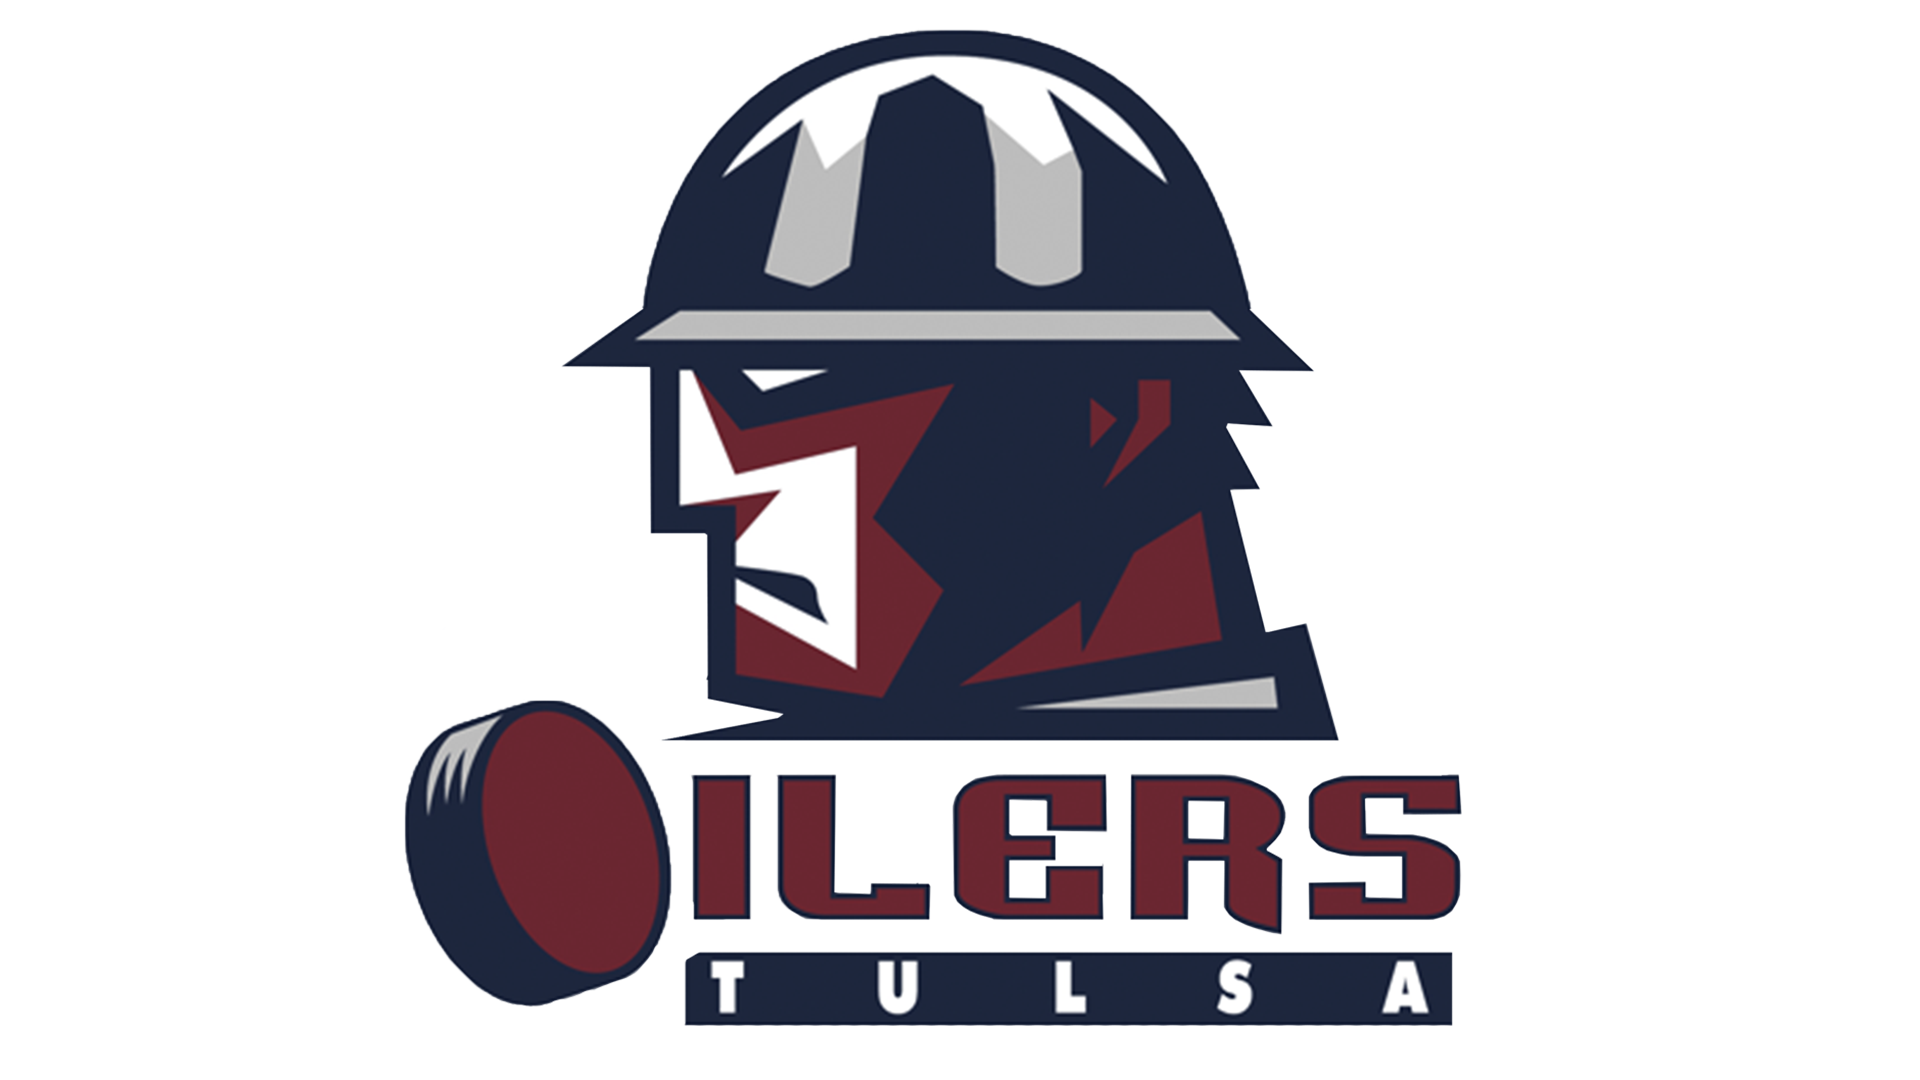 Meaning Tulsa Oilers logo and symbol.